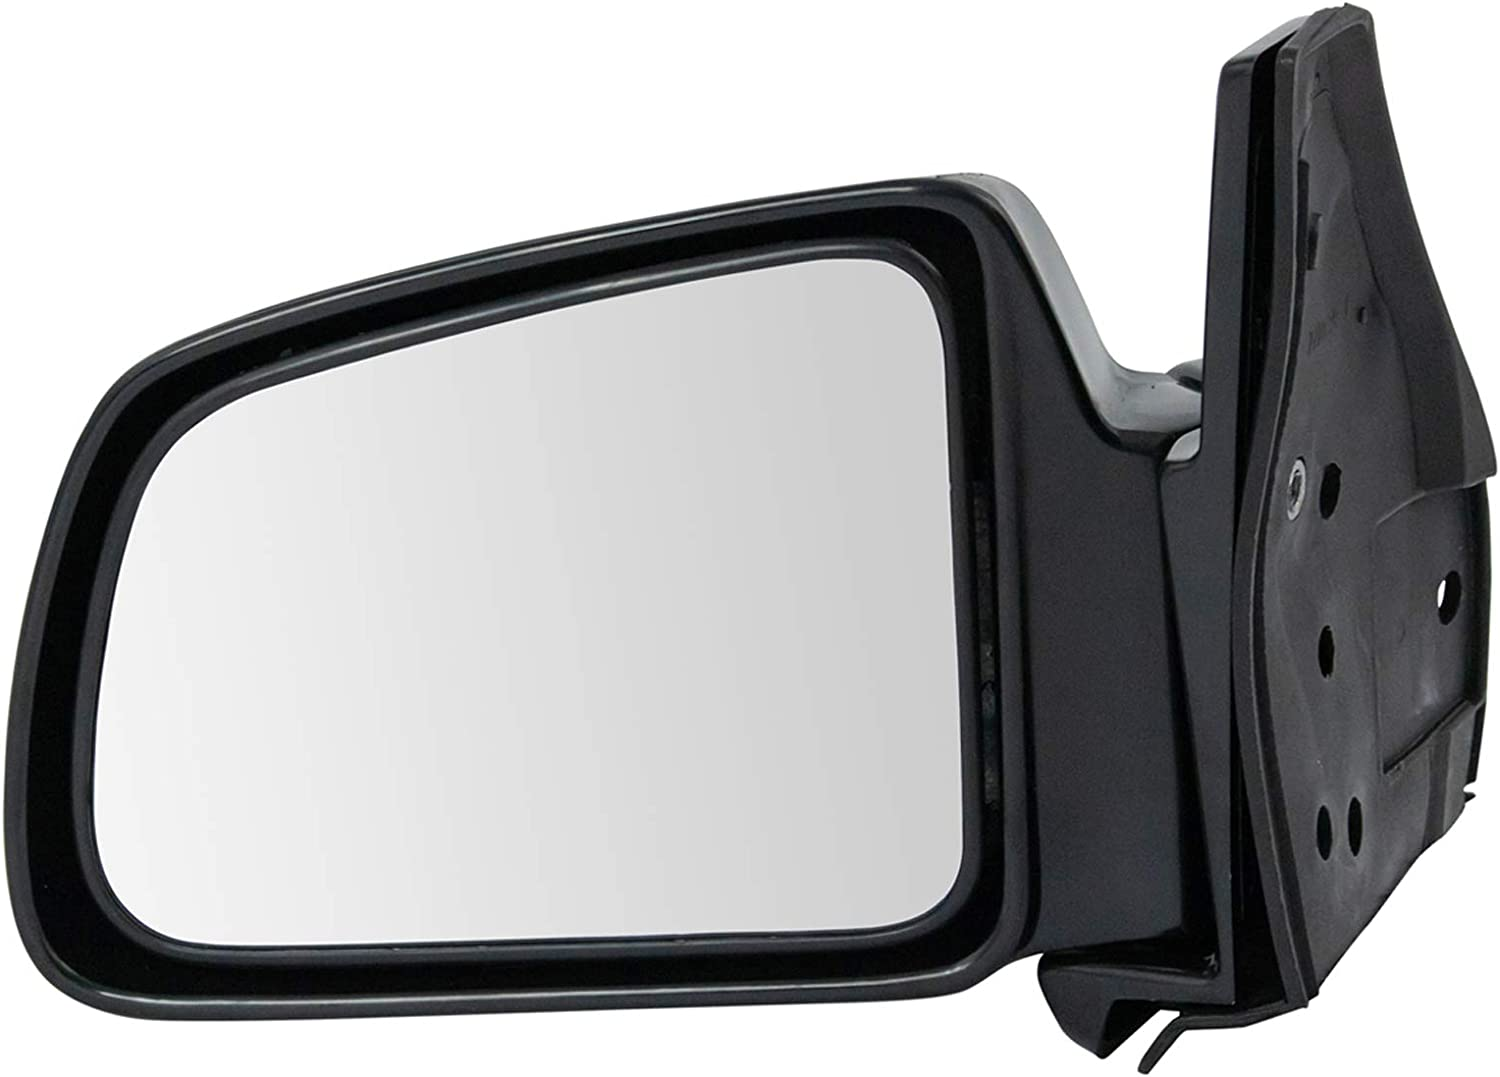 Manual Folding Mirror depot Free shipping on posting reviews LH Left Sunrunner Side Tracker Driver for